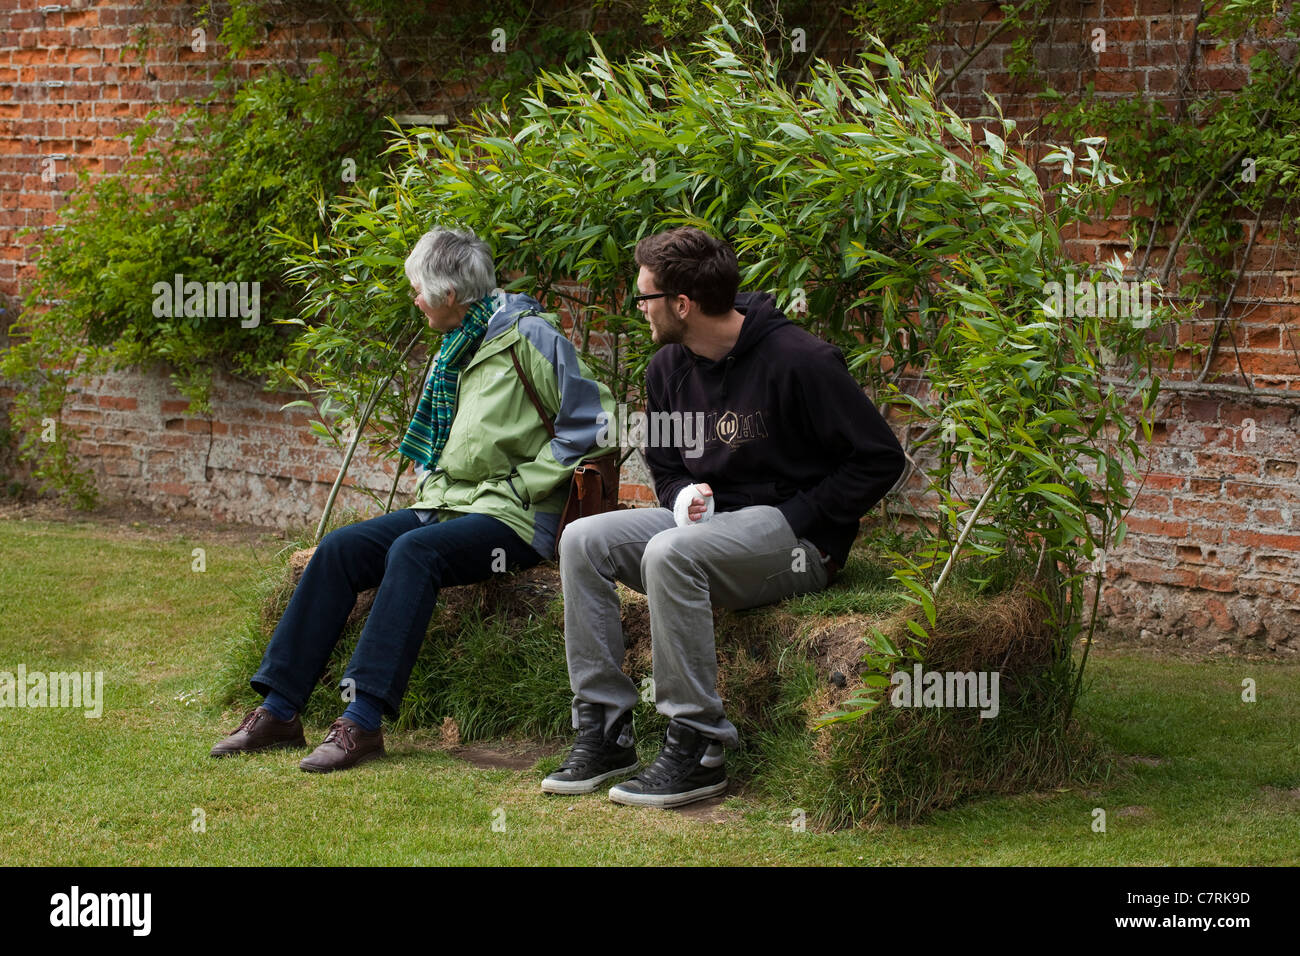 Garden Seat made from grass sods and Willow (Salix sp.) wands. Norfolk. - Stock Image